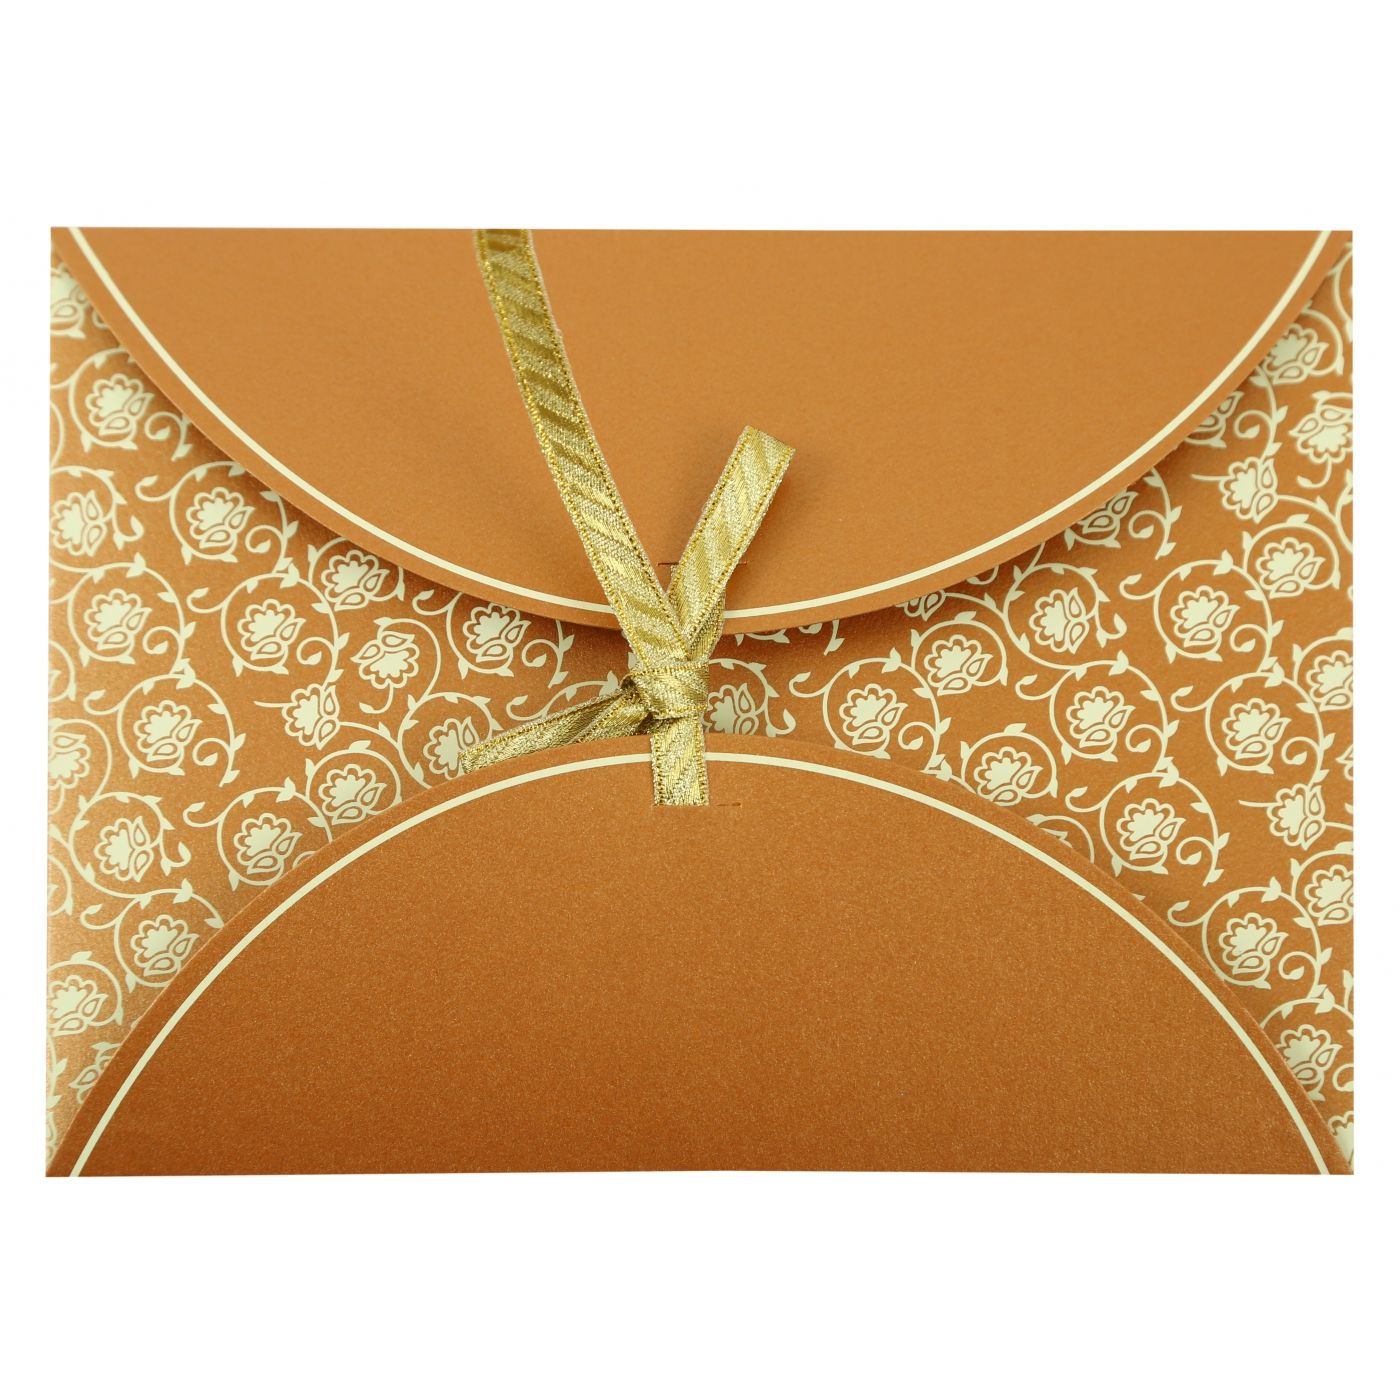 COPPER SHIMMERY BUTTERFLY THEMED - SCREEN PRINTED WEDDING INVITATION : CW-821C - IndianWeddingCards